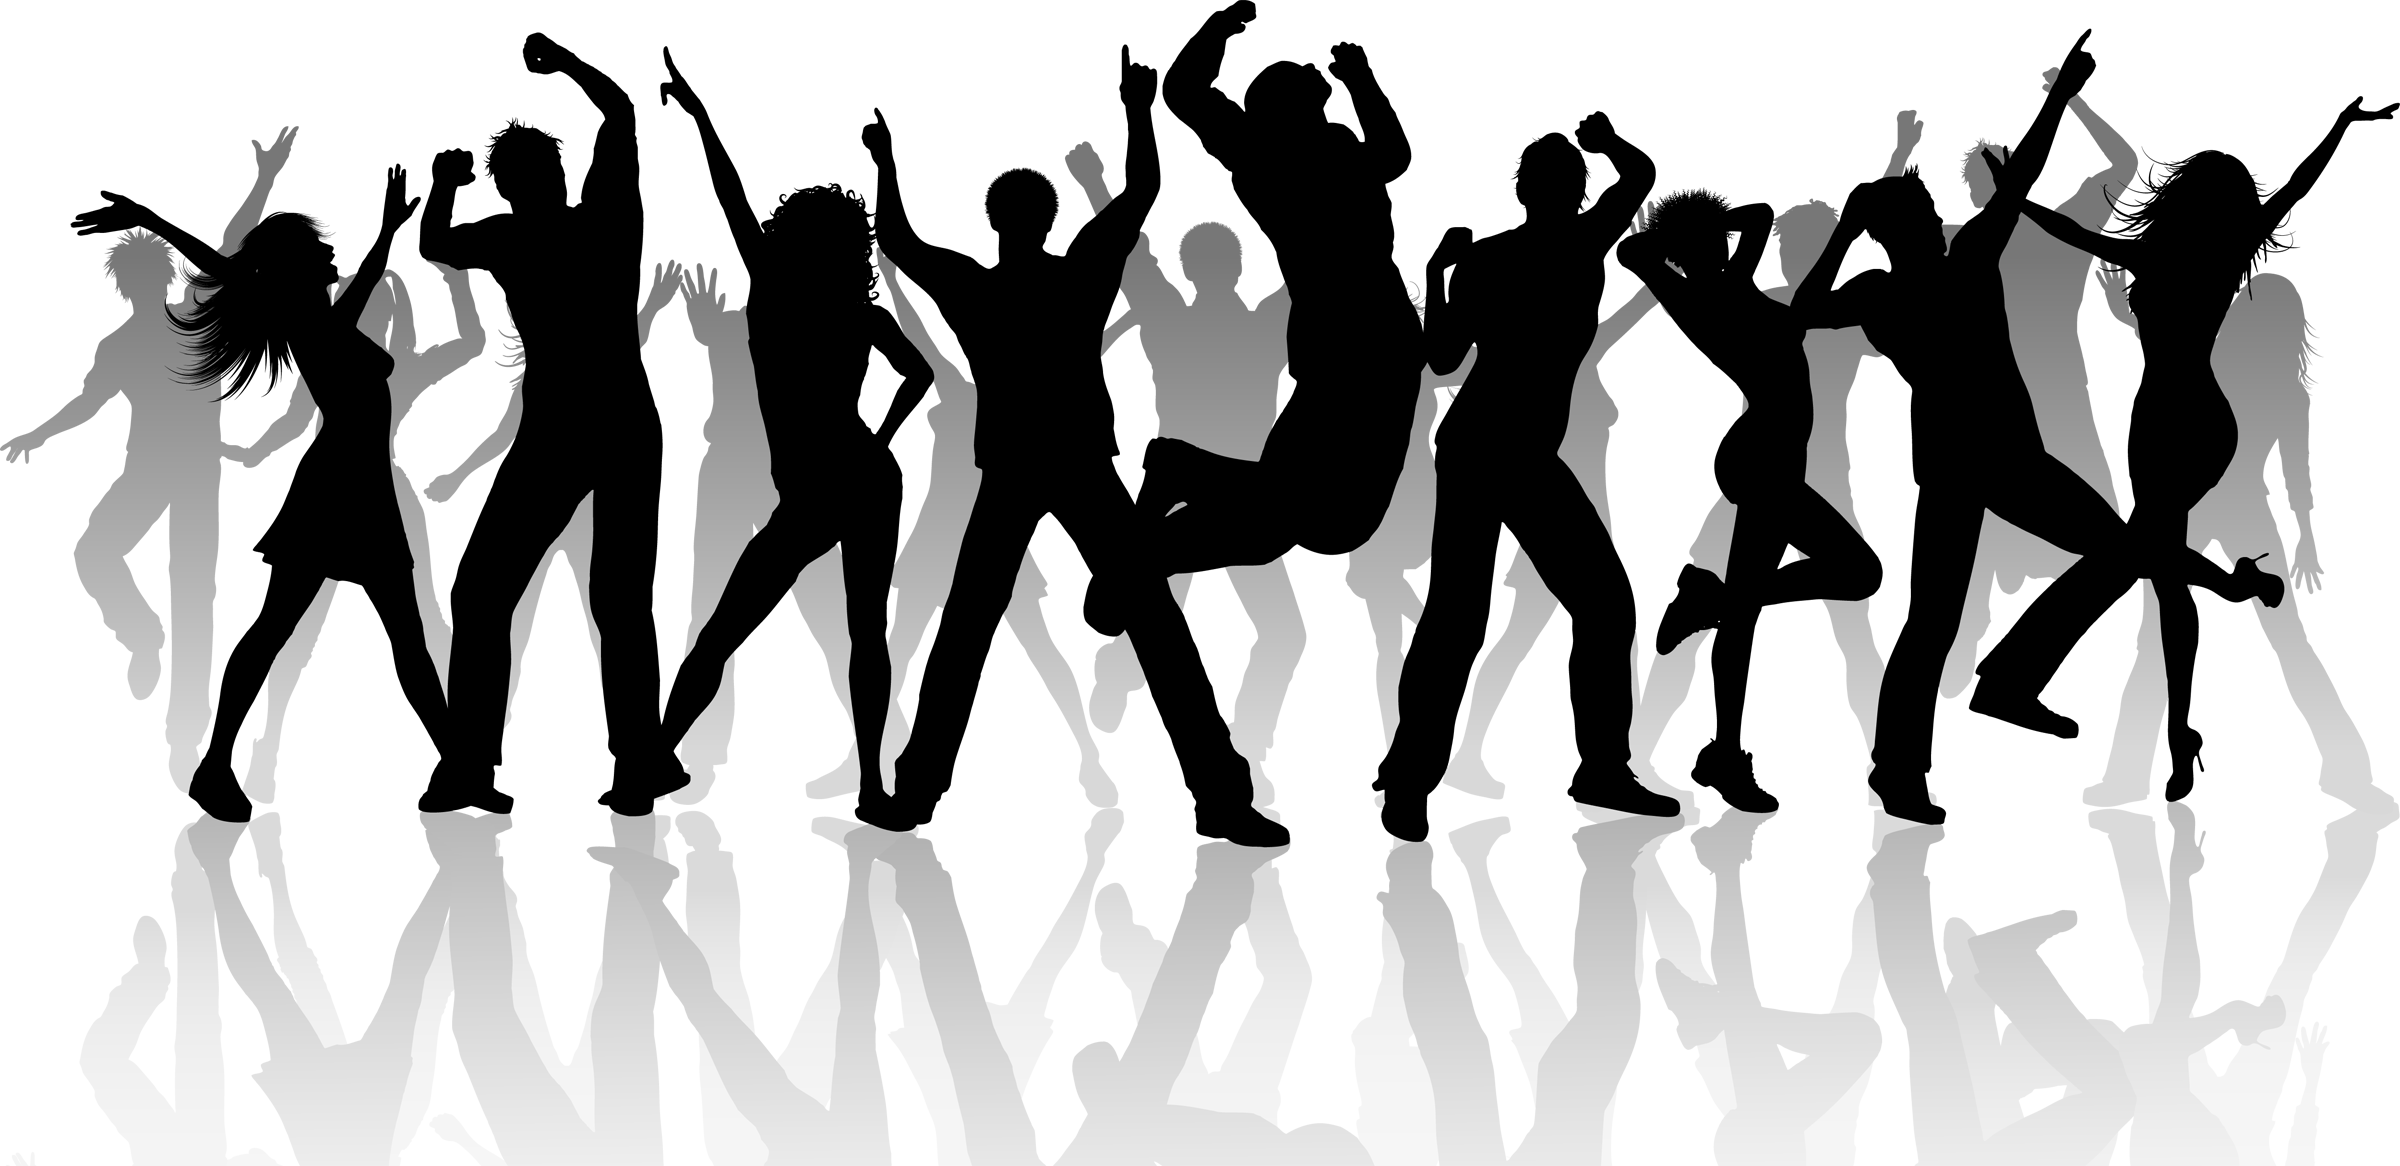 Group dance silhouette png. Person dancing hd transparent